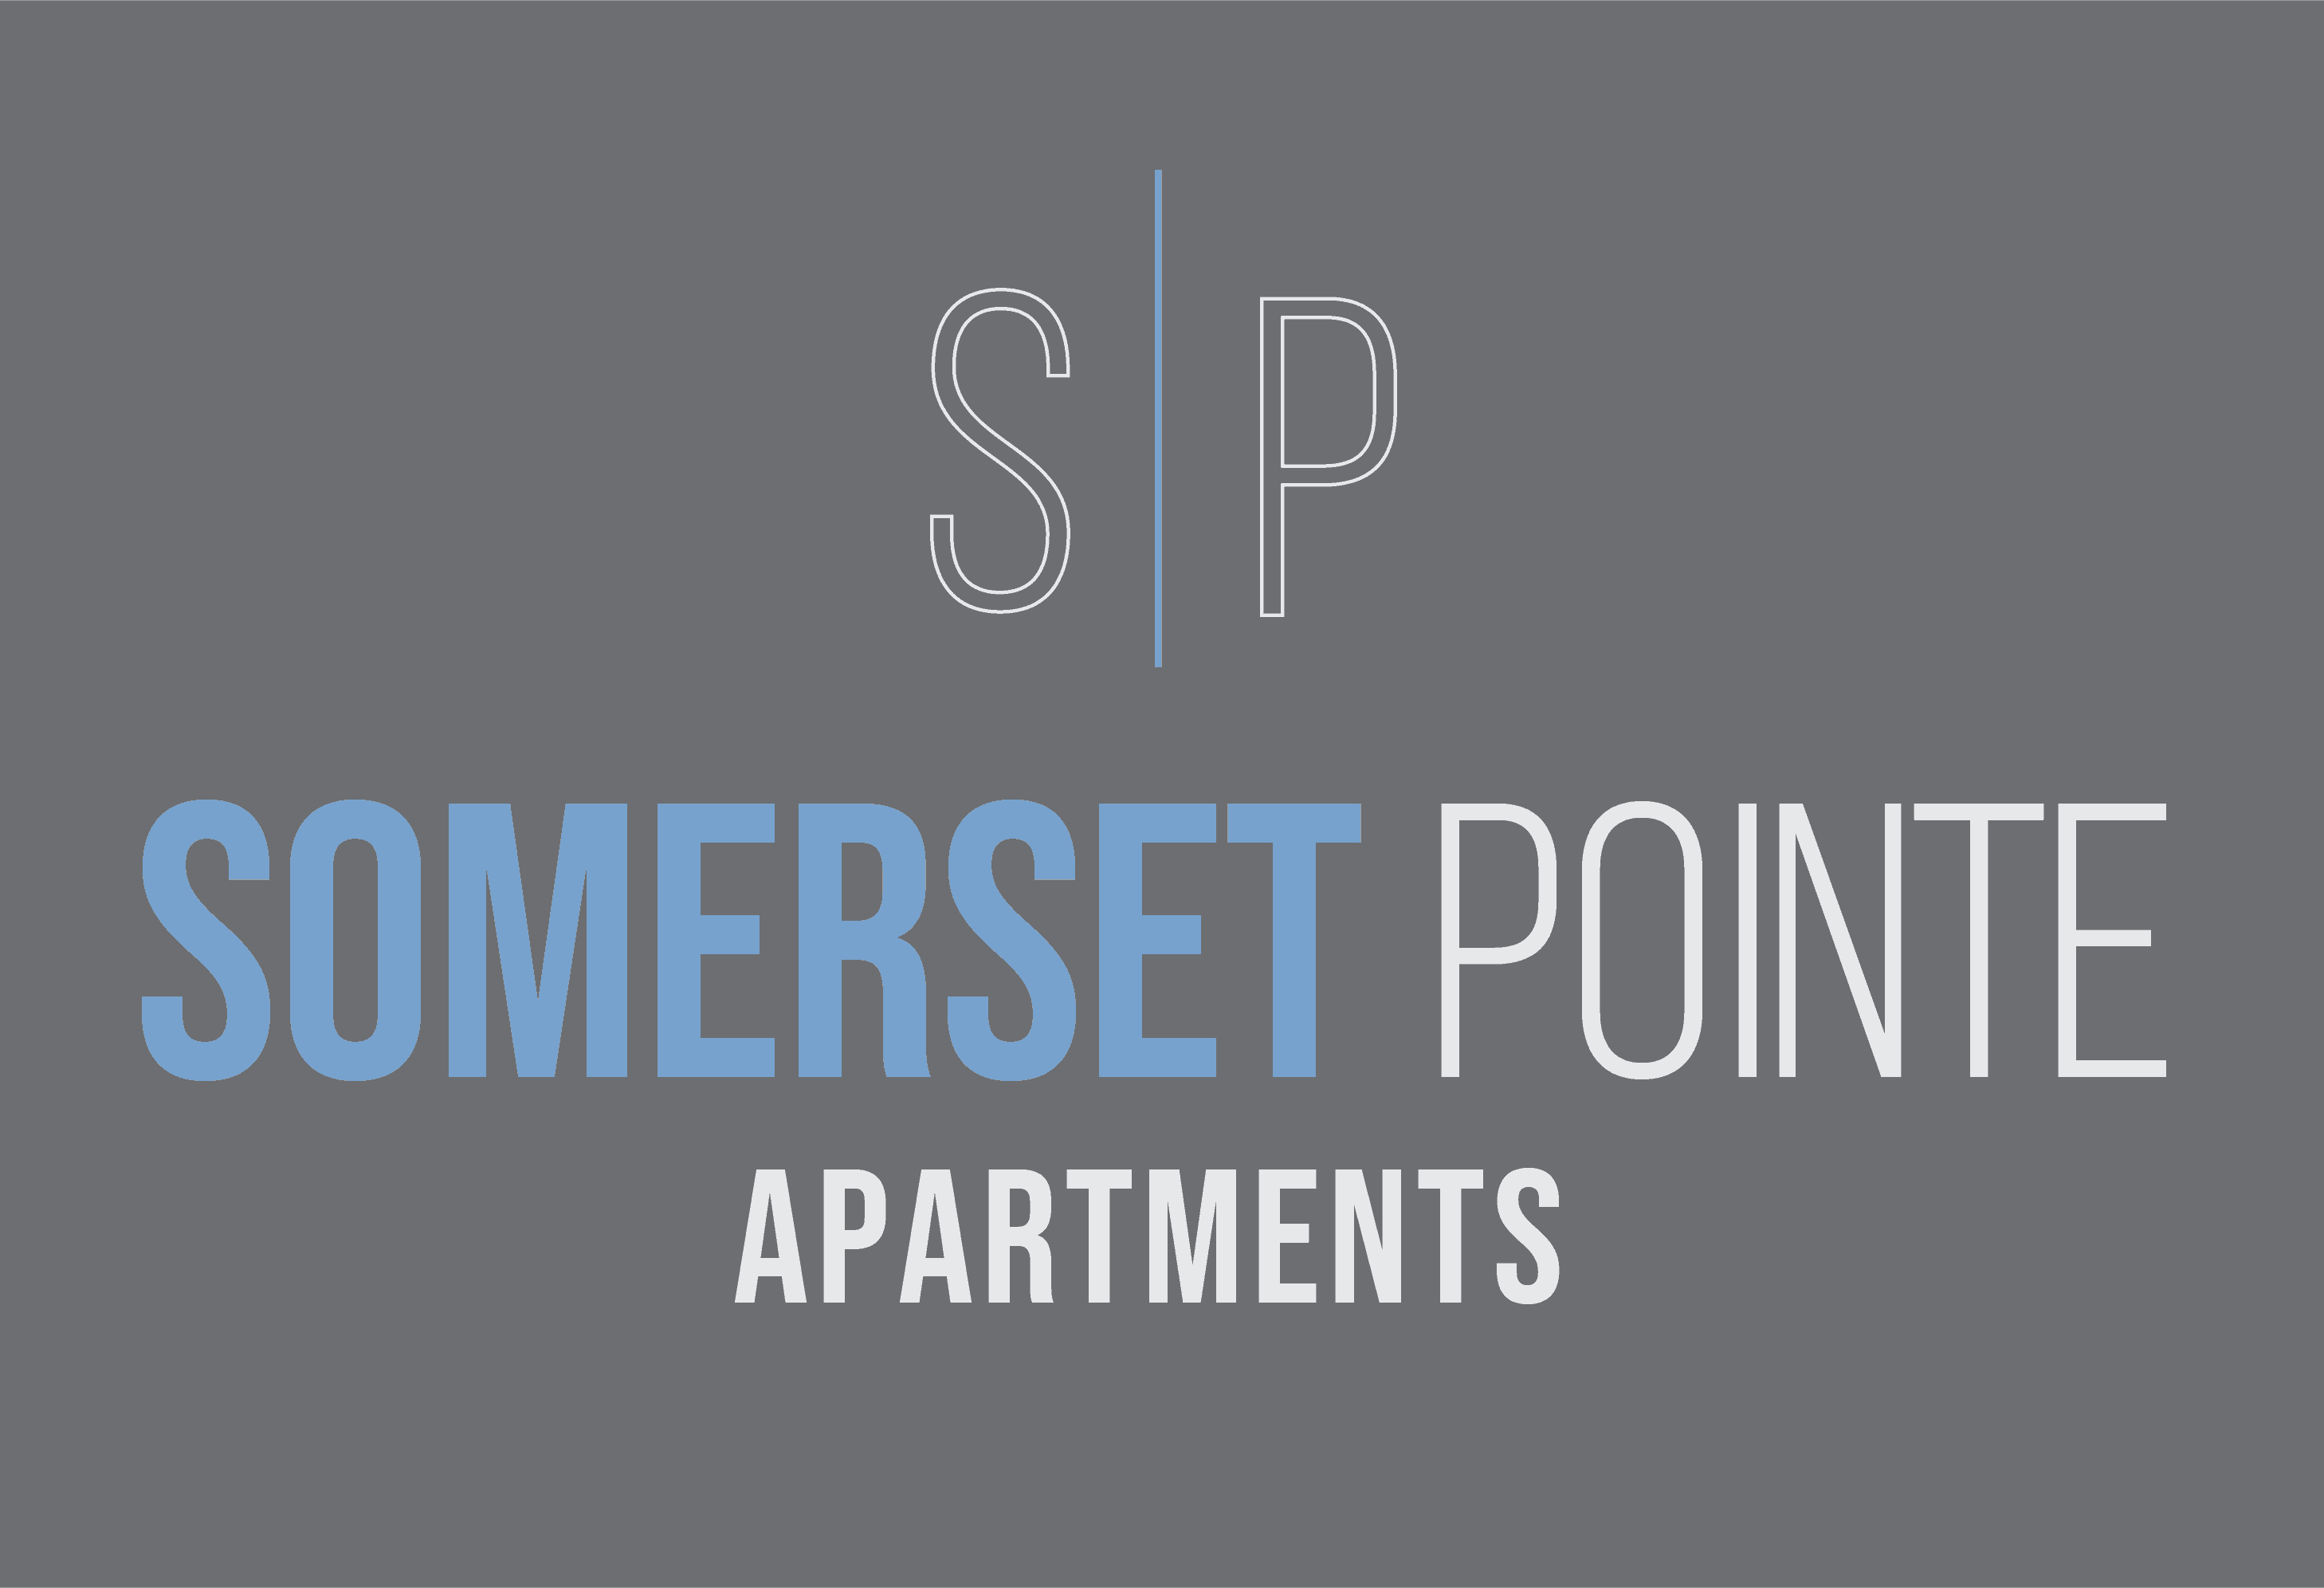 Somerset Pointe Apartments